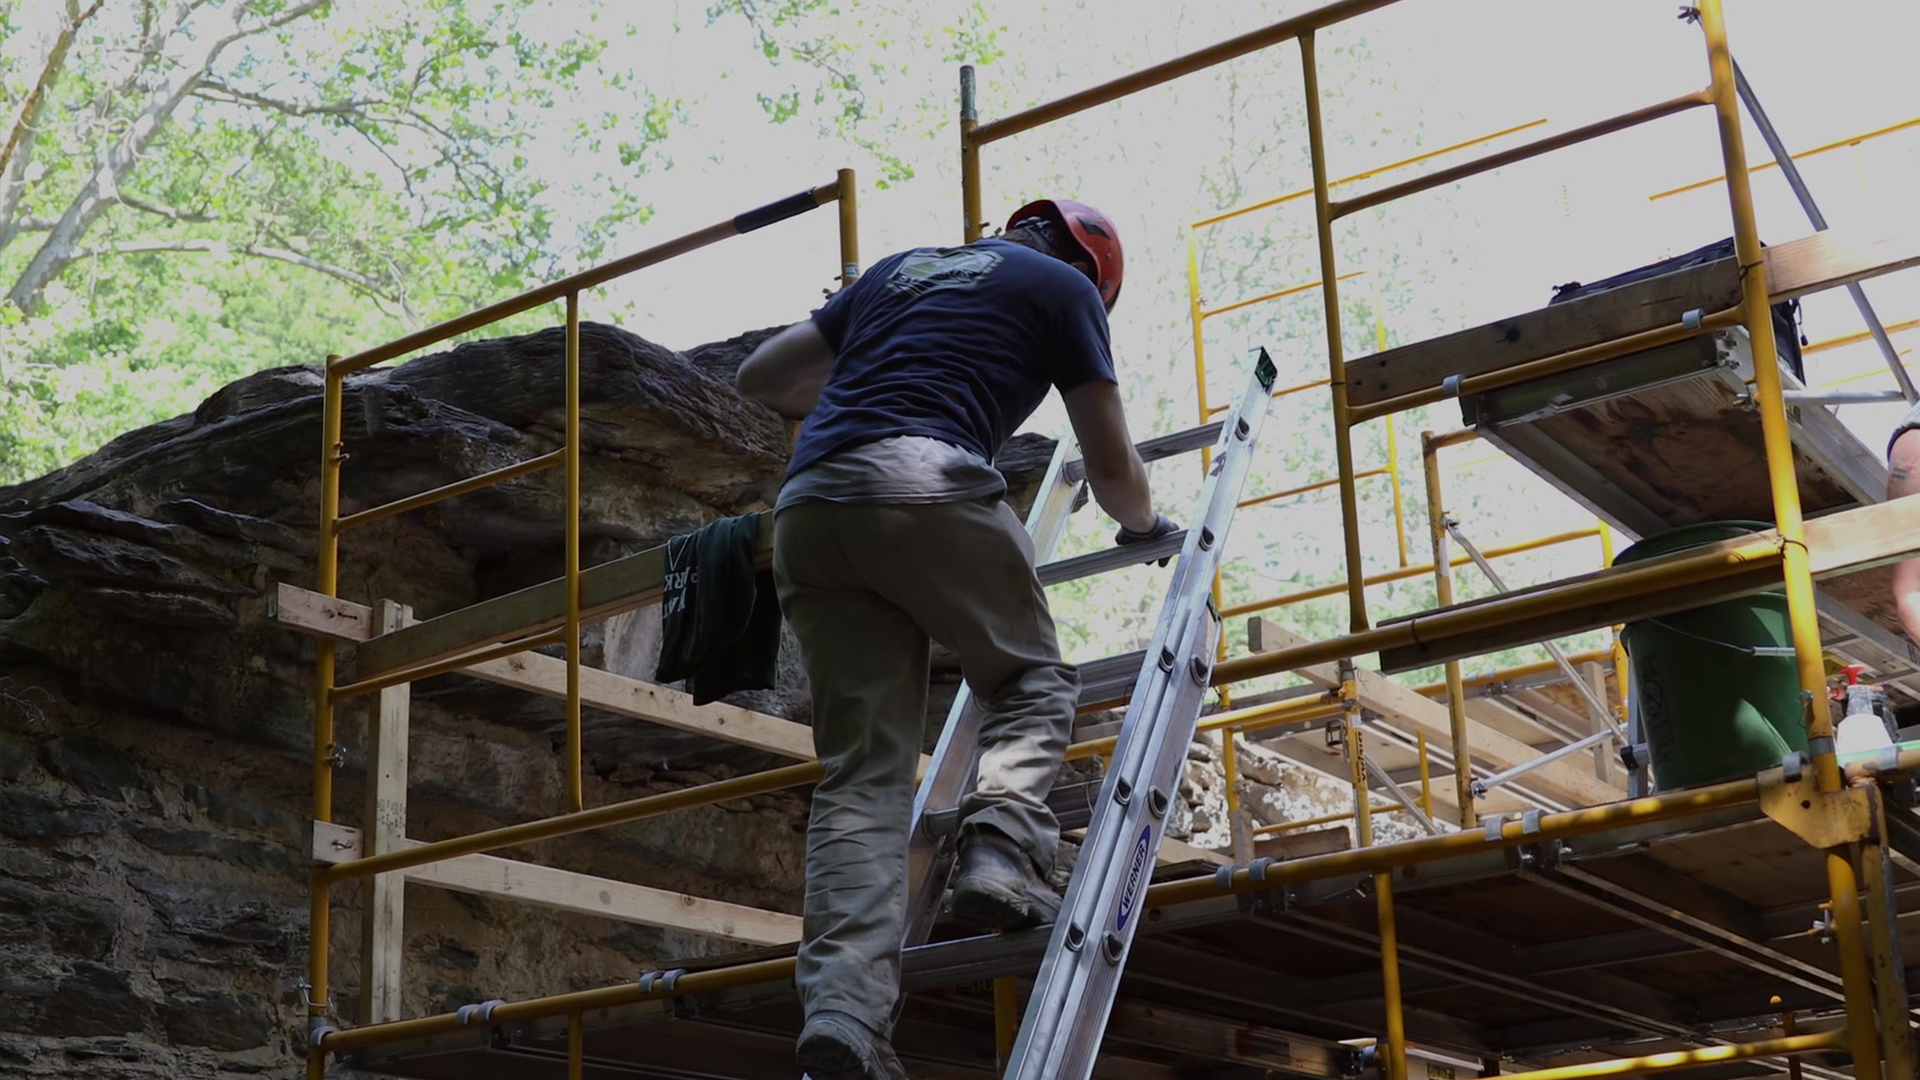 An NPS employee skilled in the traditional trades works at the Pulp Mill Ruins in Harpers Ferry, WV